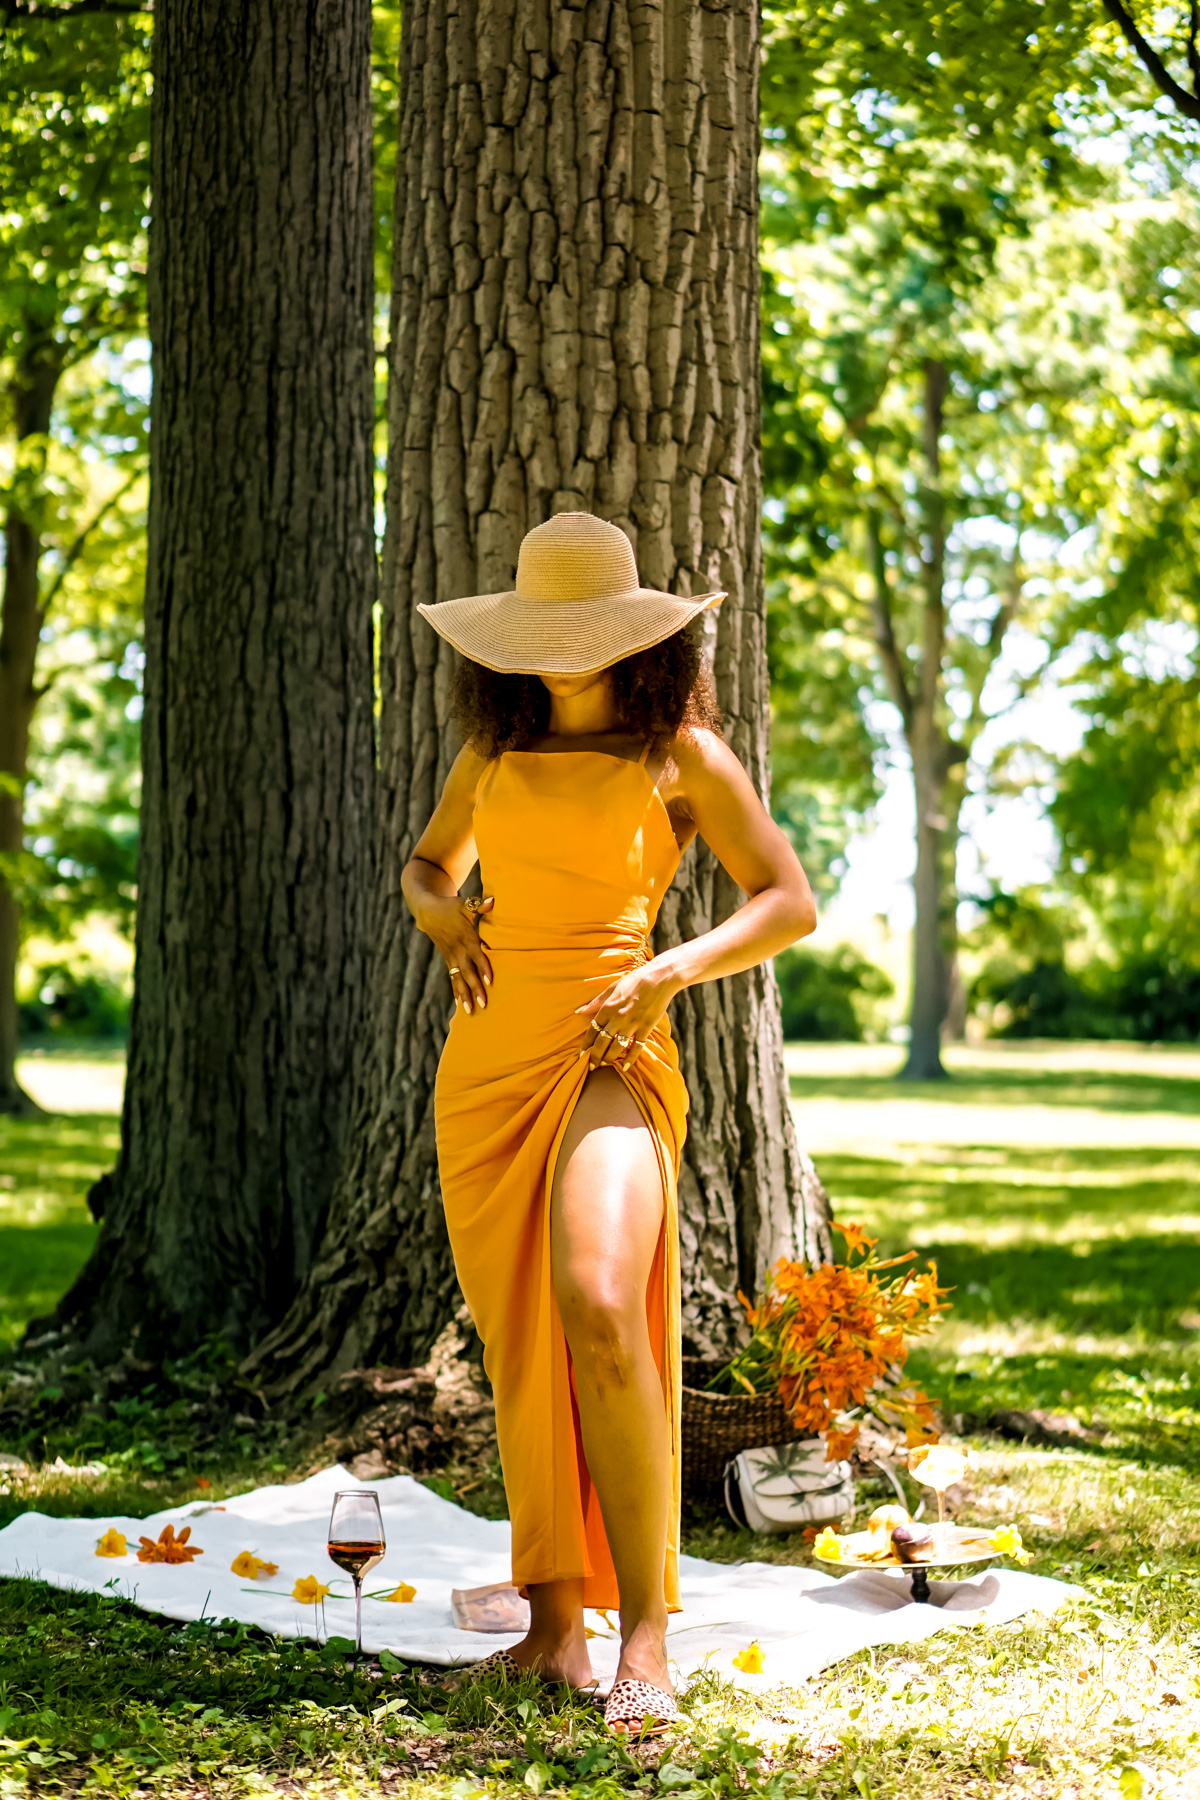 summer dresses for pear shaped women, chic summer outfit ideas for women, latest fashion trends for women what to wear, black fashion bloggers inspiration, affordable summer dresses